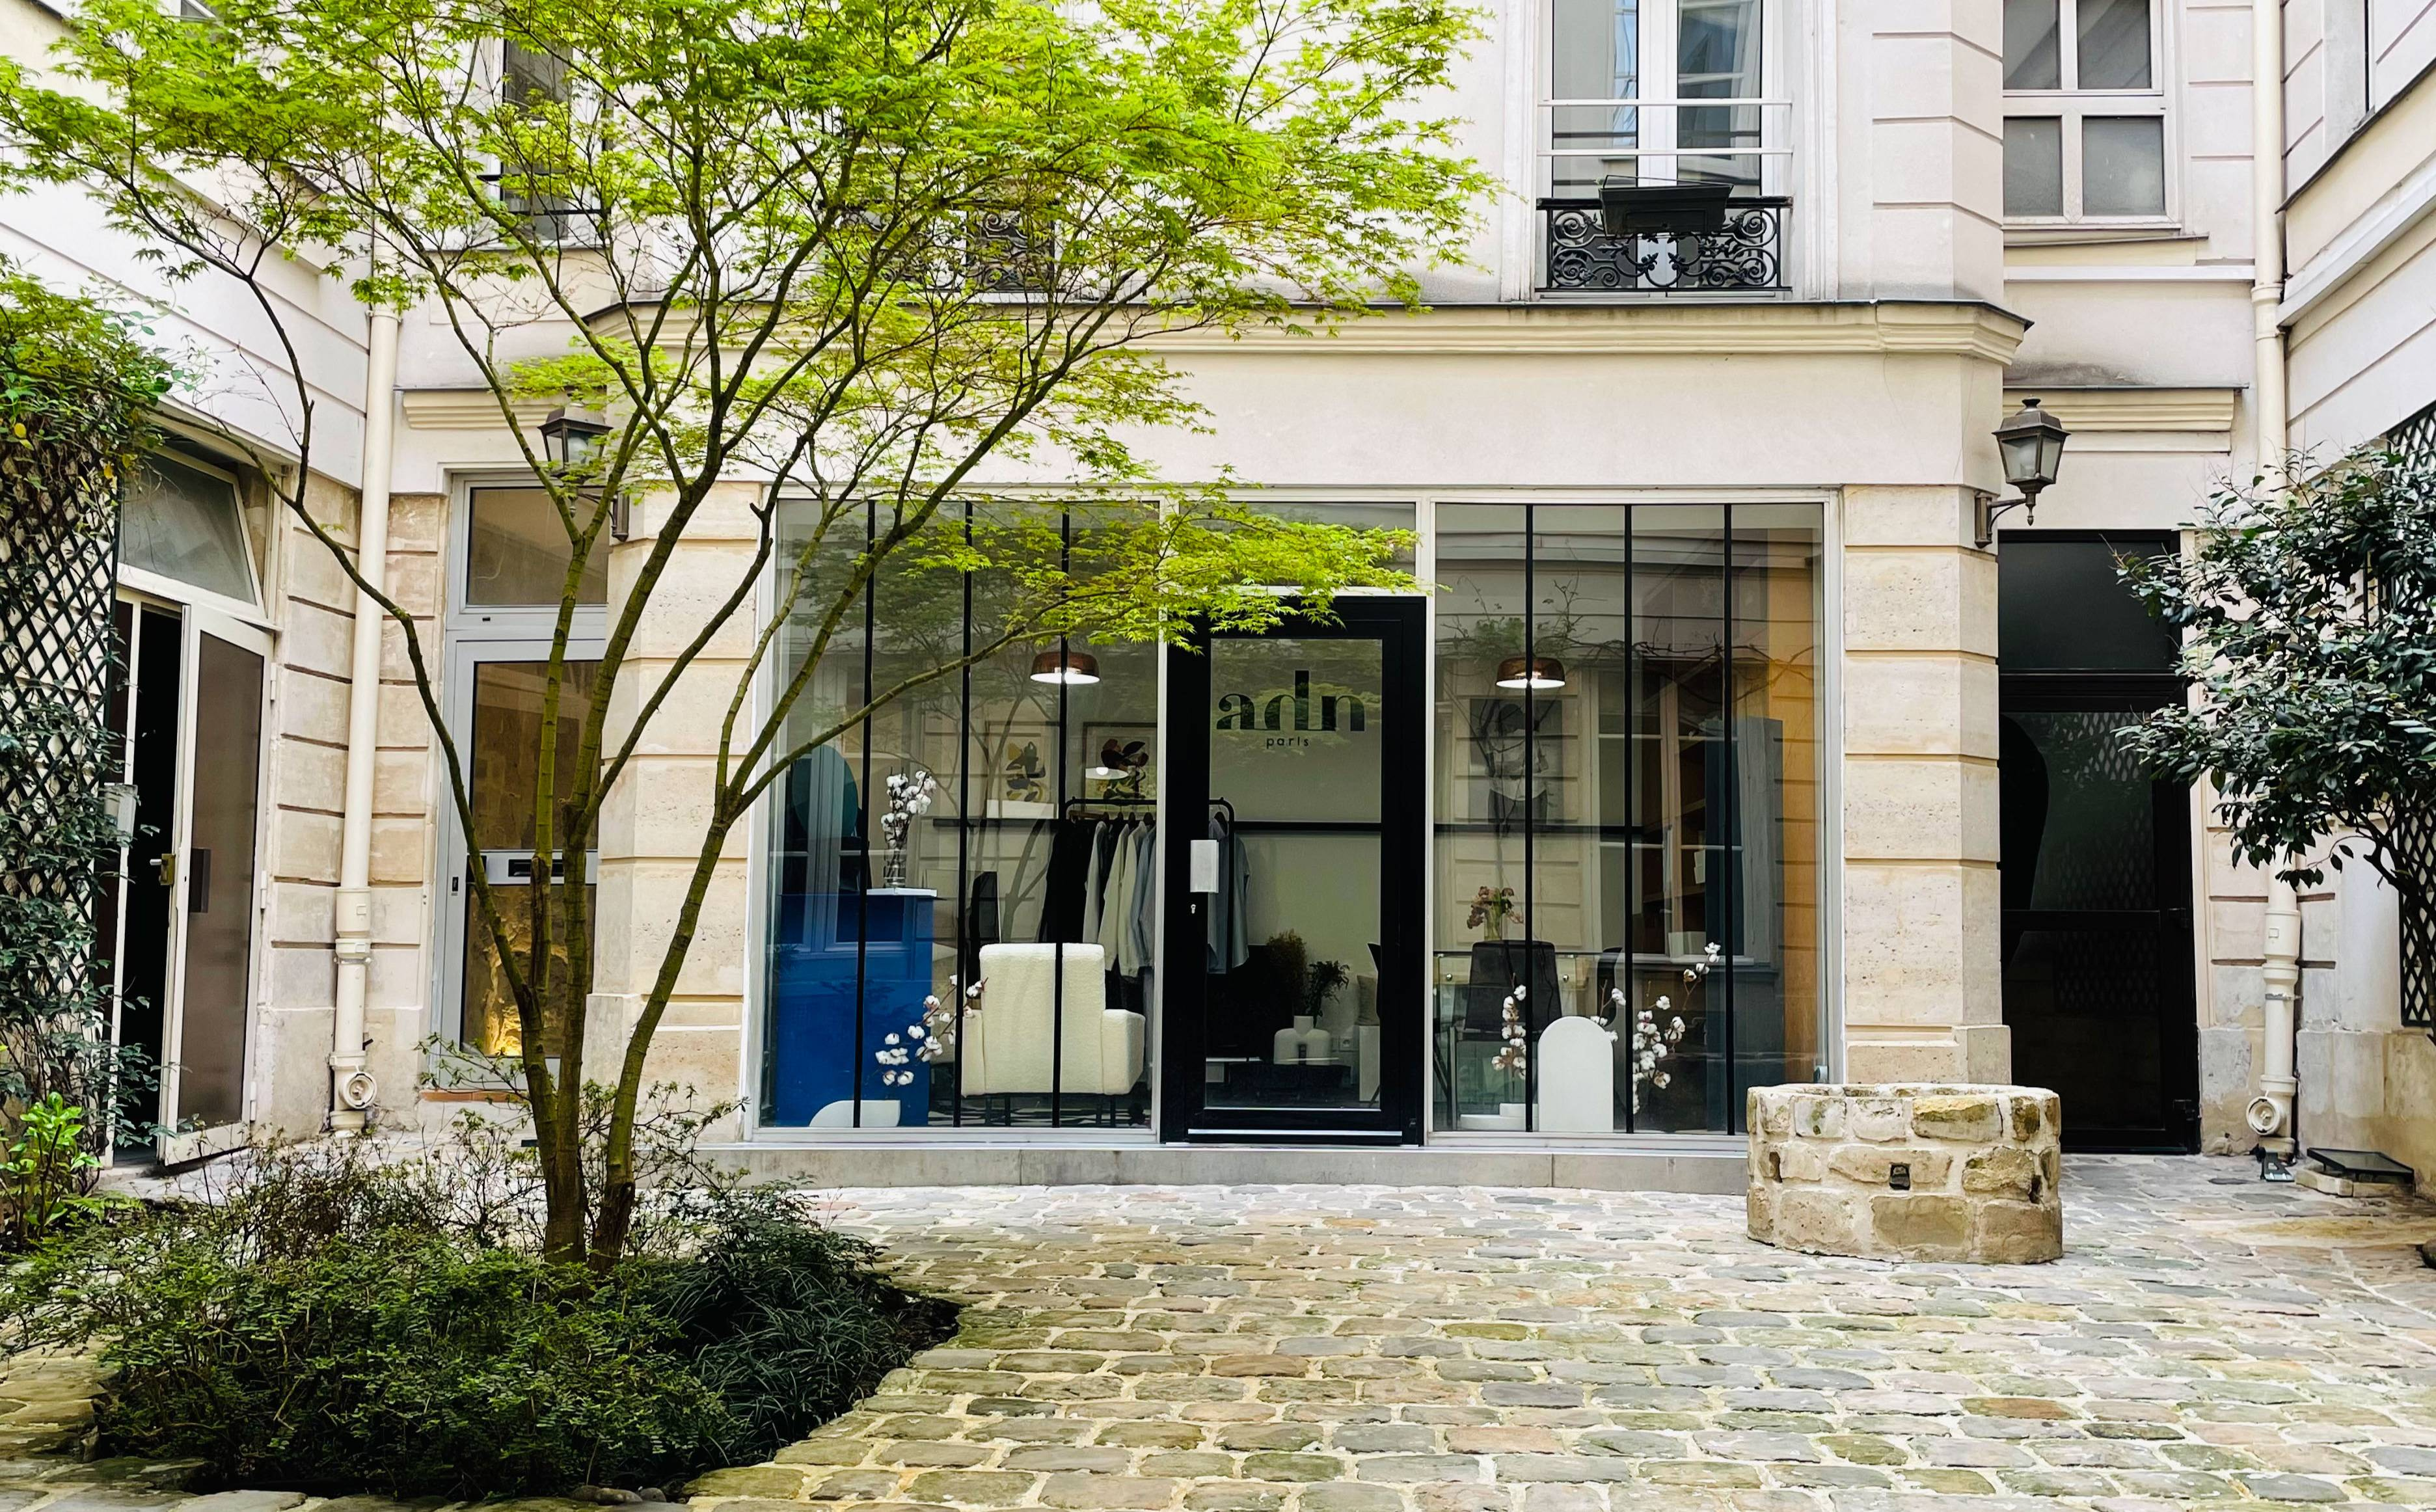 Adn Paris ouvre son premier studio-boutique